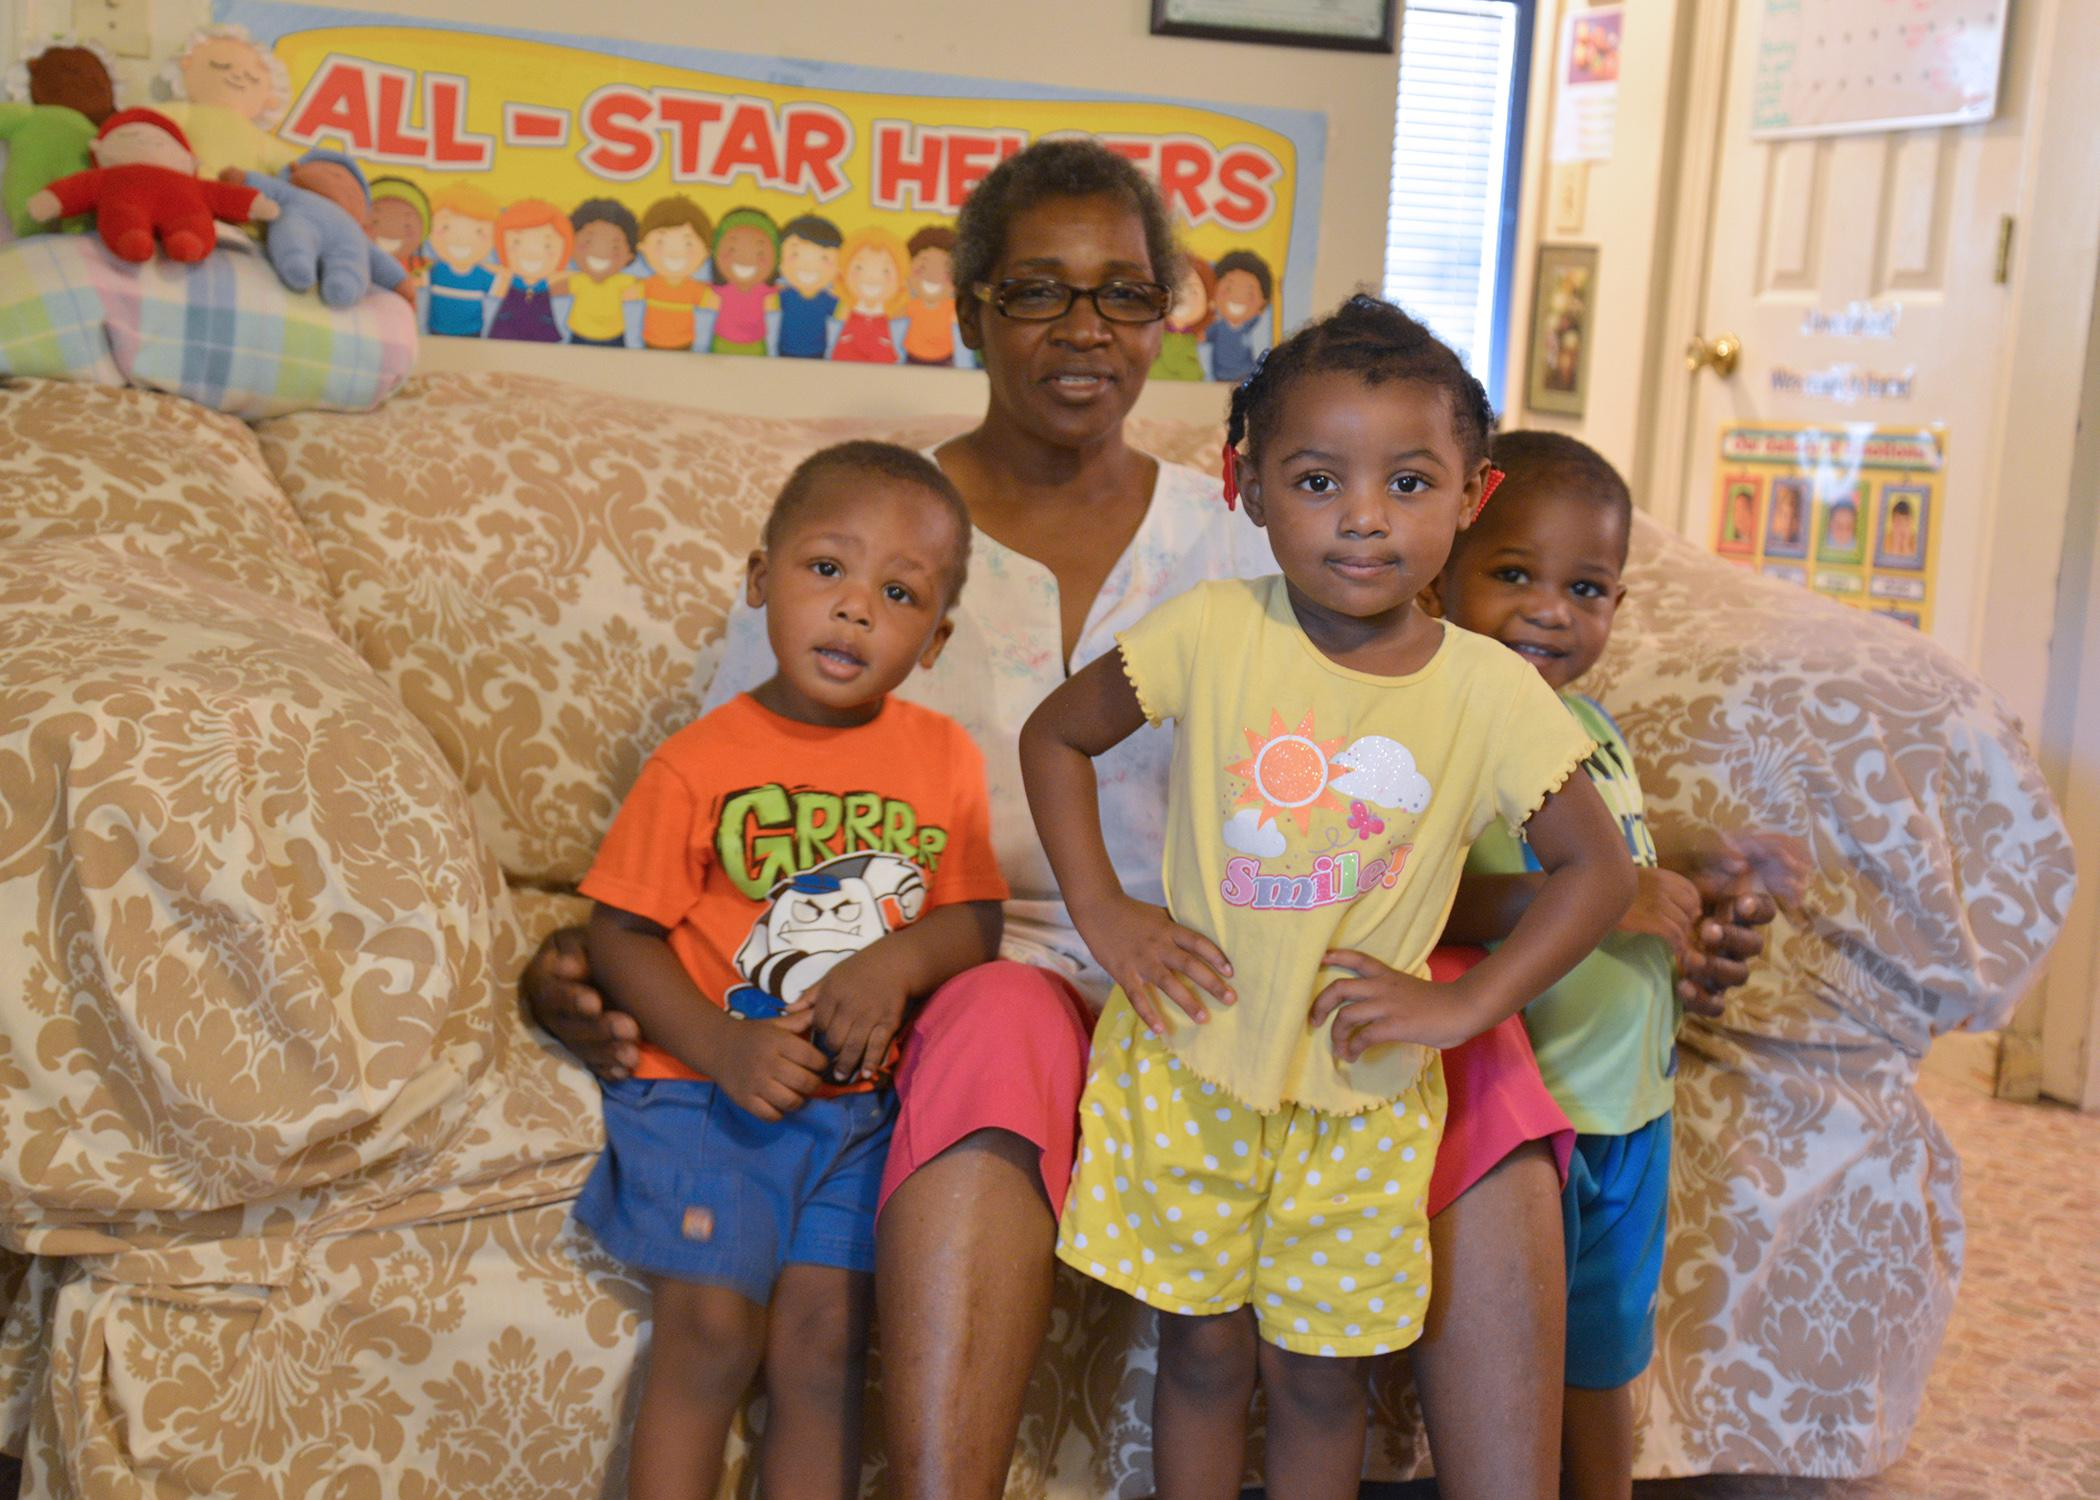 Katherine Weatherby is surrounded by her 2-year-old grandchildren (from left) Zirean Davis, G'Niereya Alston and Bryson Ward at her home in Sallis, Mississippi, on Aug. 20, 2015. (Photo by MSU Human Sciences/Amy Barefield)